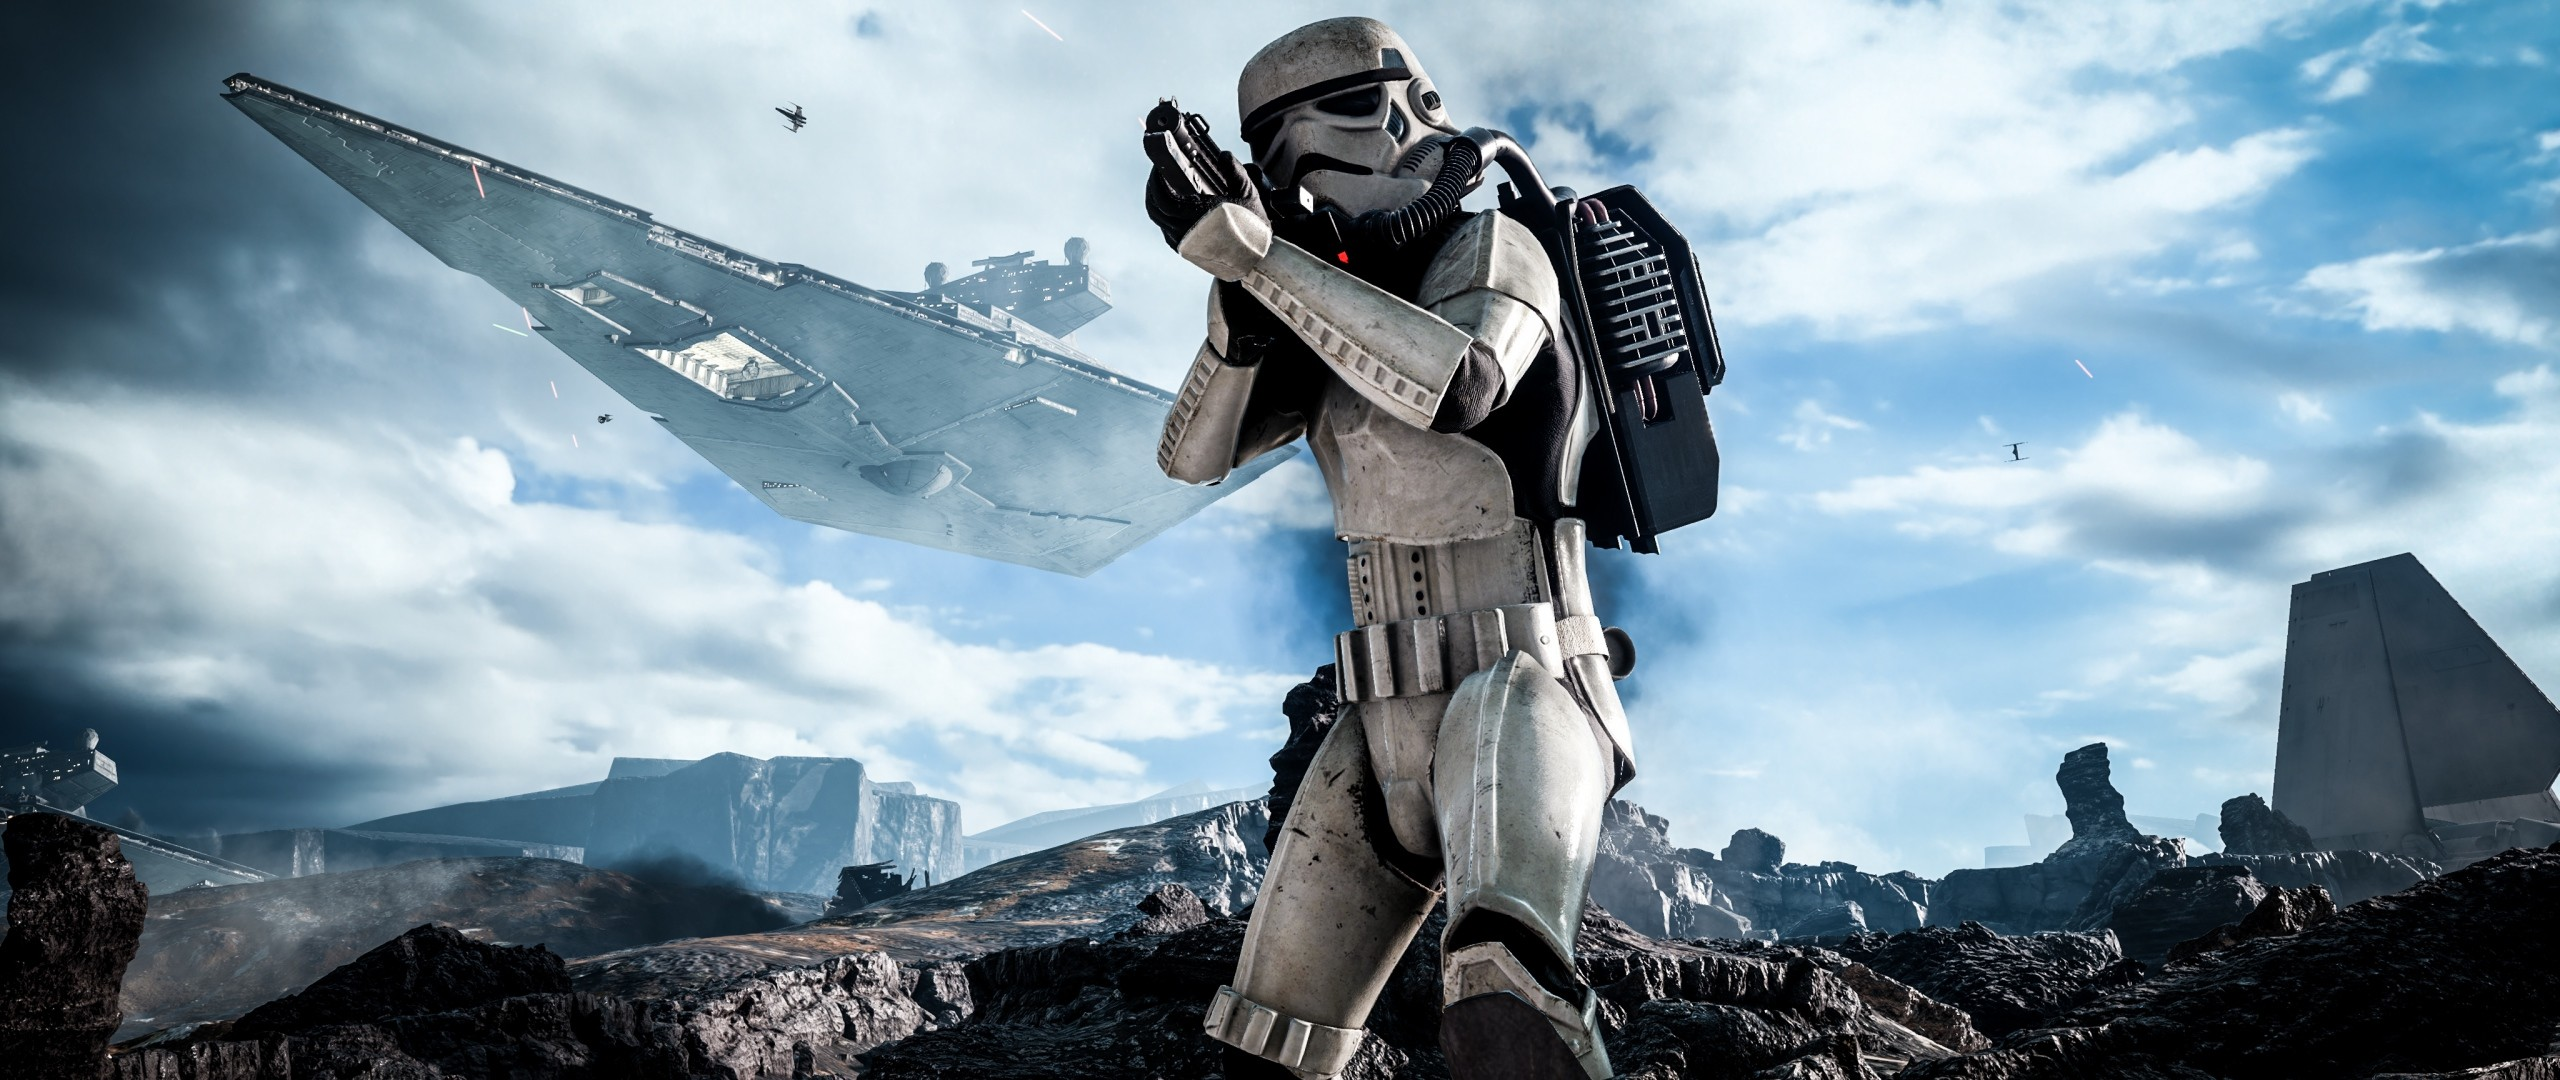 2560x1080 Preview wallpaper star wars, battlefront, electronic arts